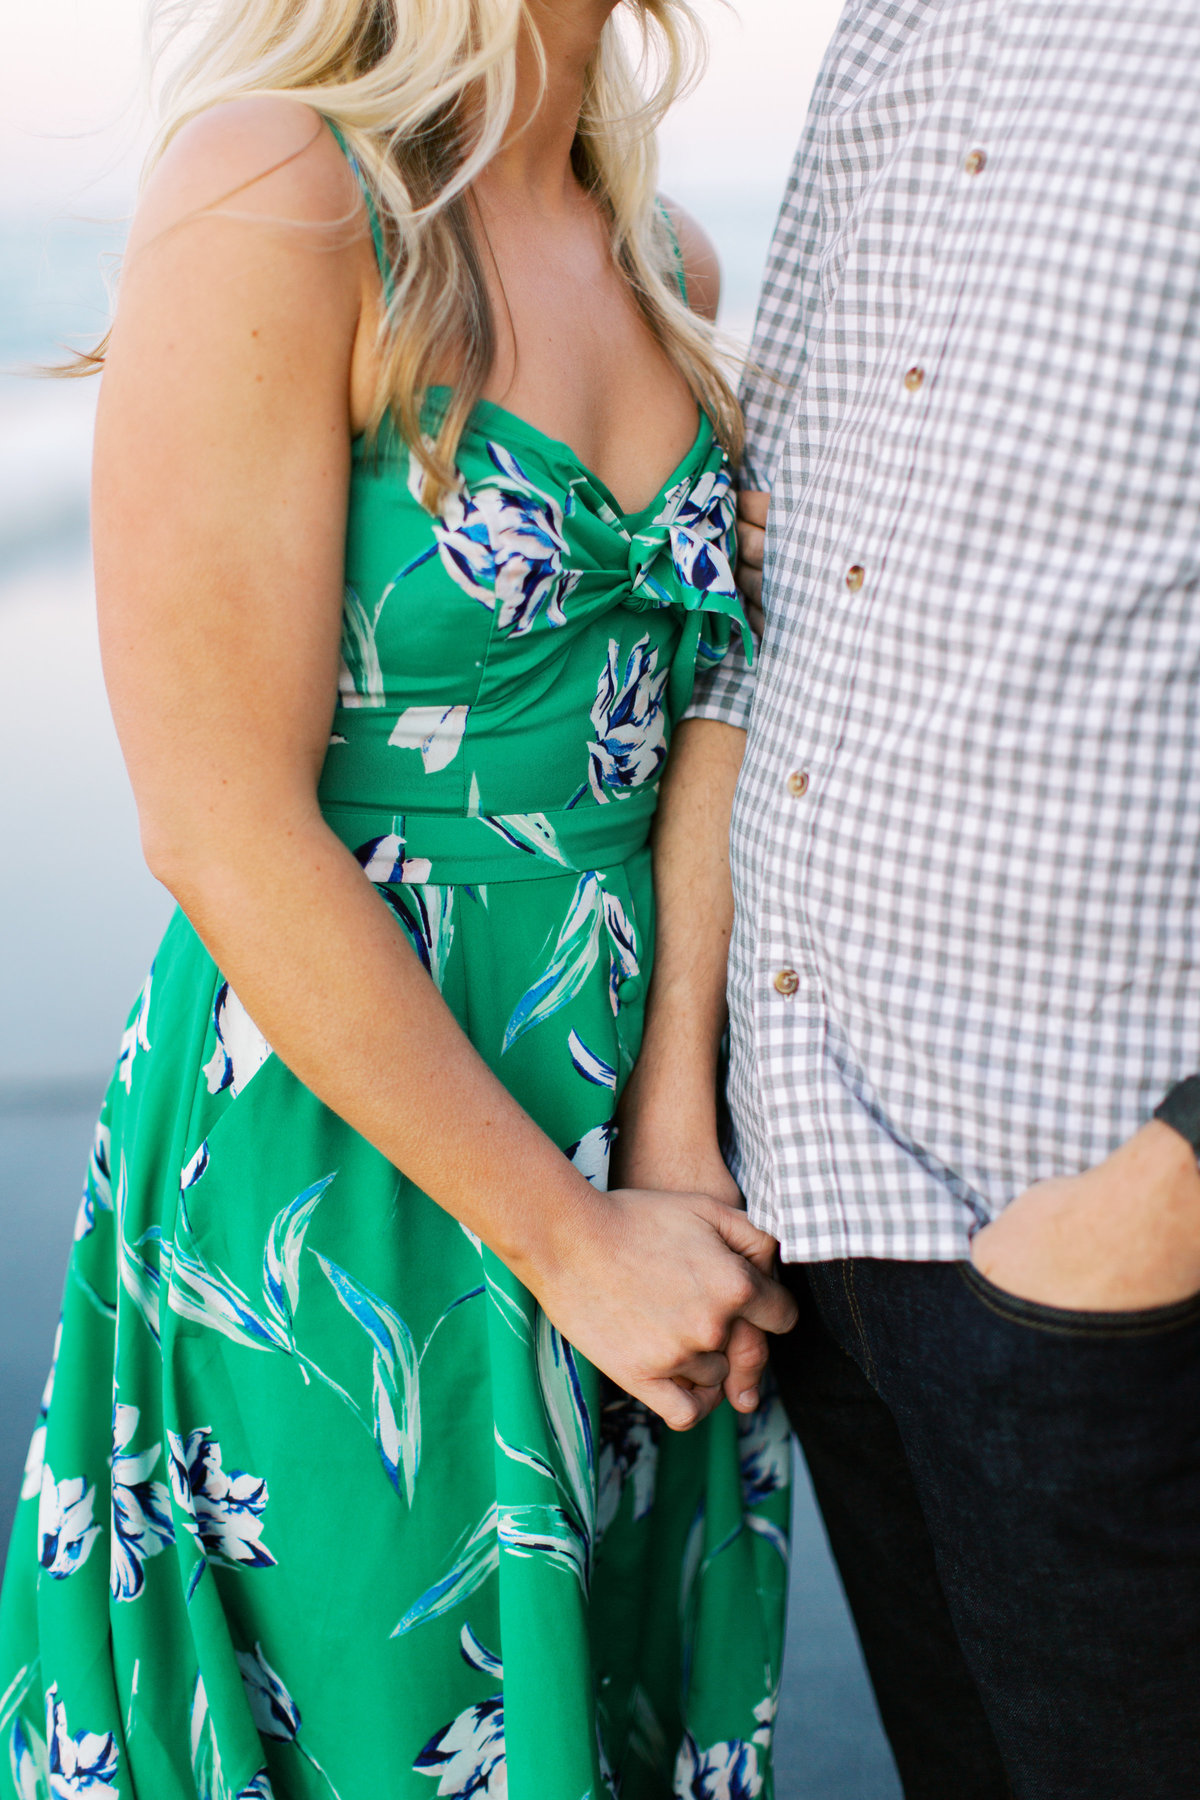 MaryJames_Engagement_June132019_153